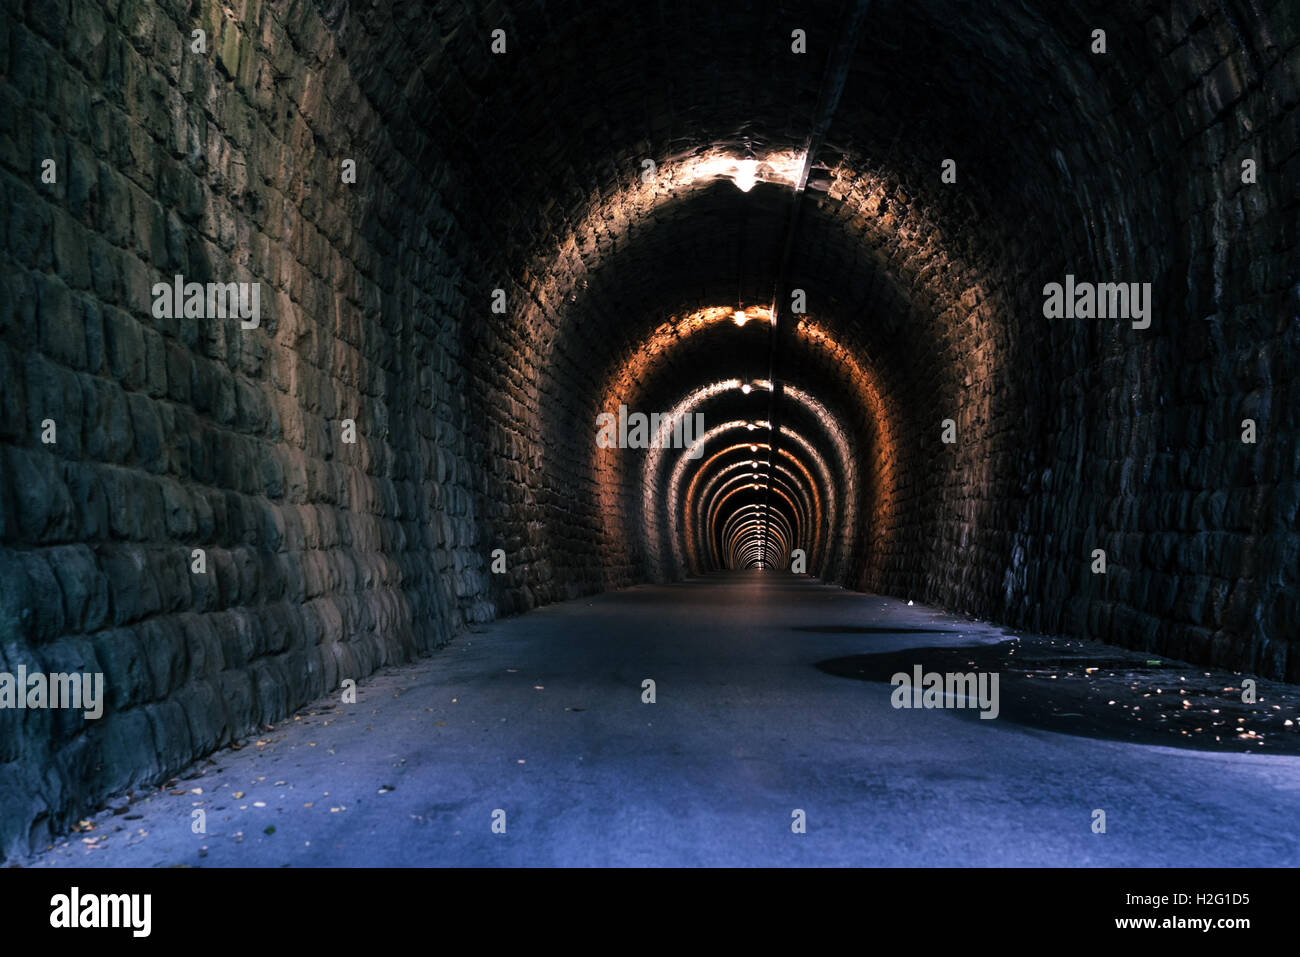 Endless tunnel as abstract background with vanishing point perspective - Stock Image